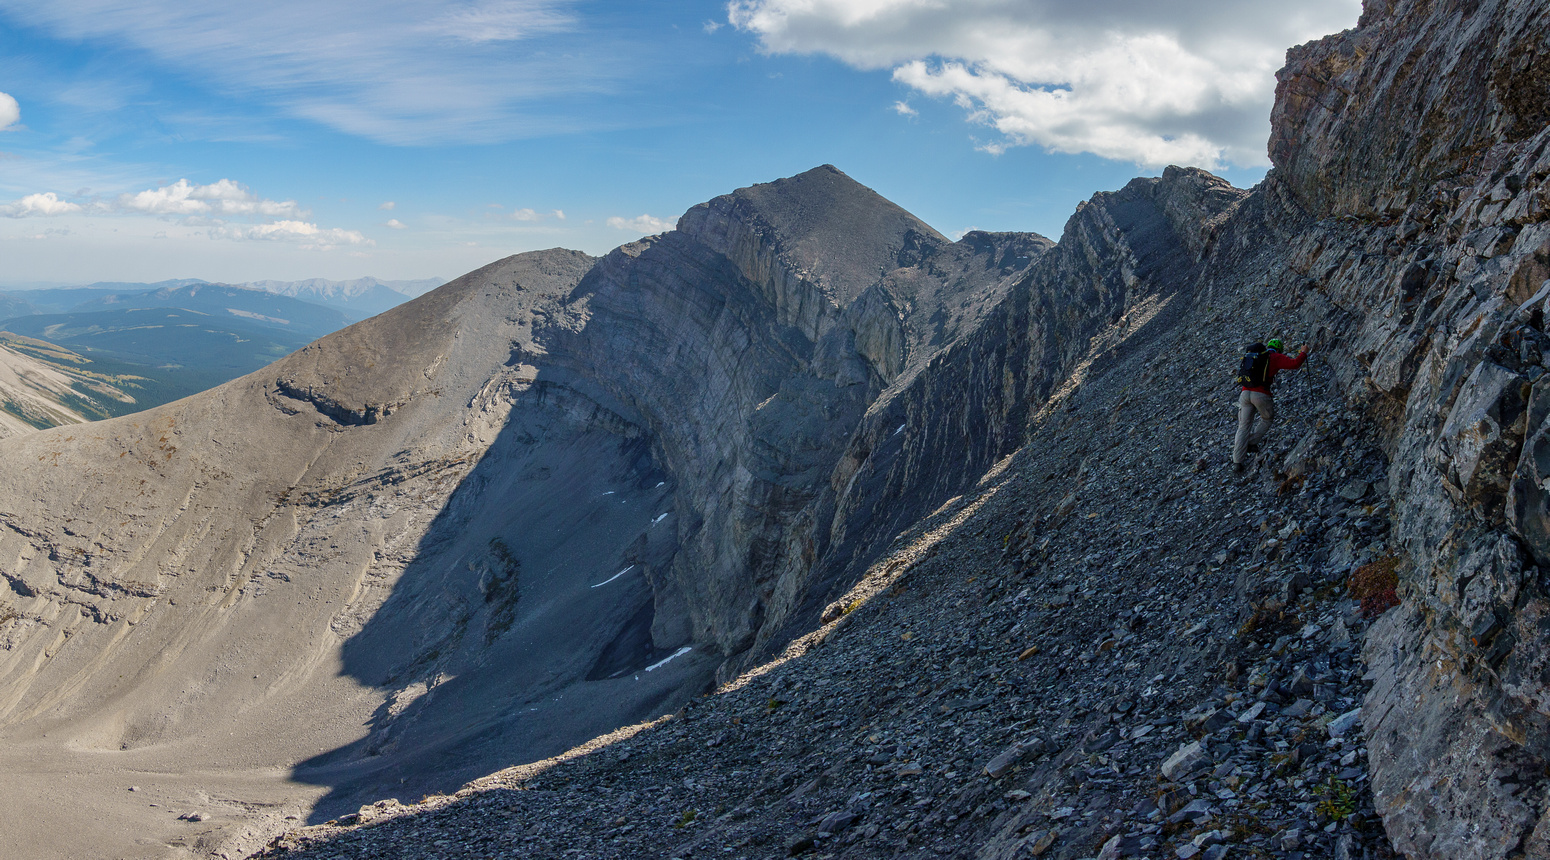 We didn't follow the obvious scree bench to the end, choosing to exit a bit earlier which worked.